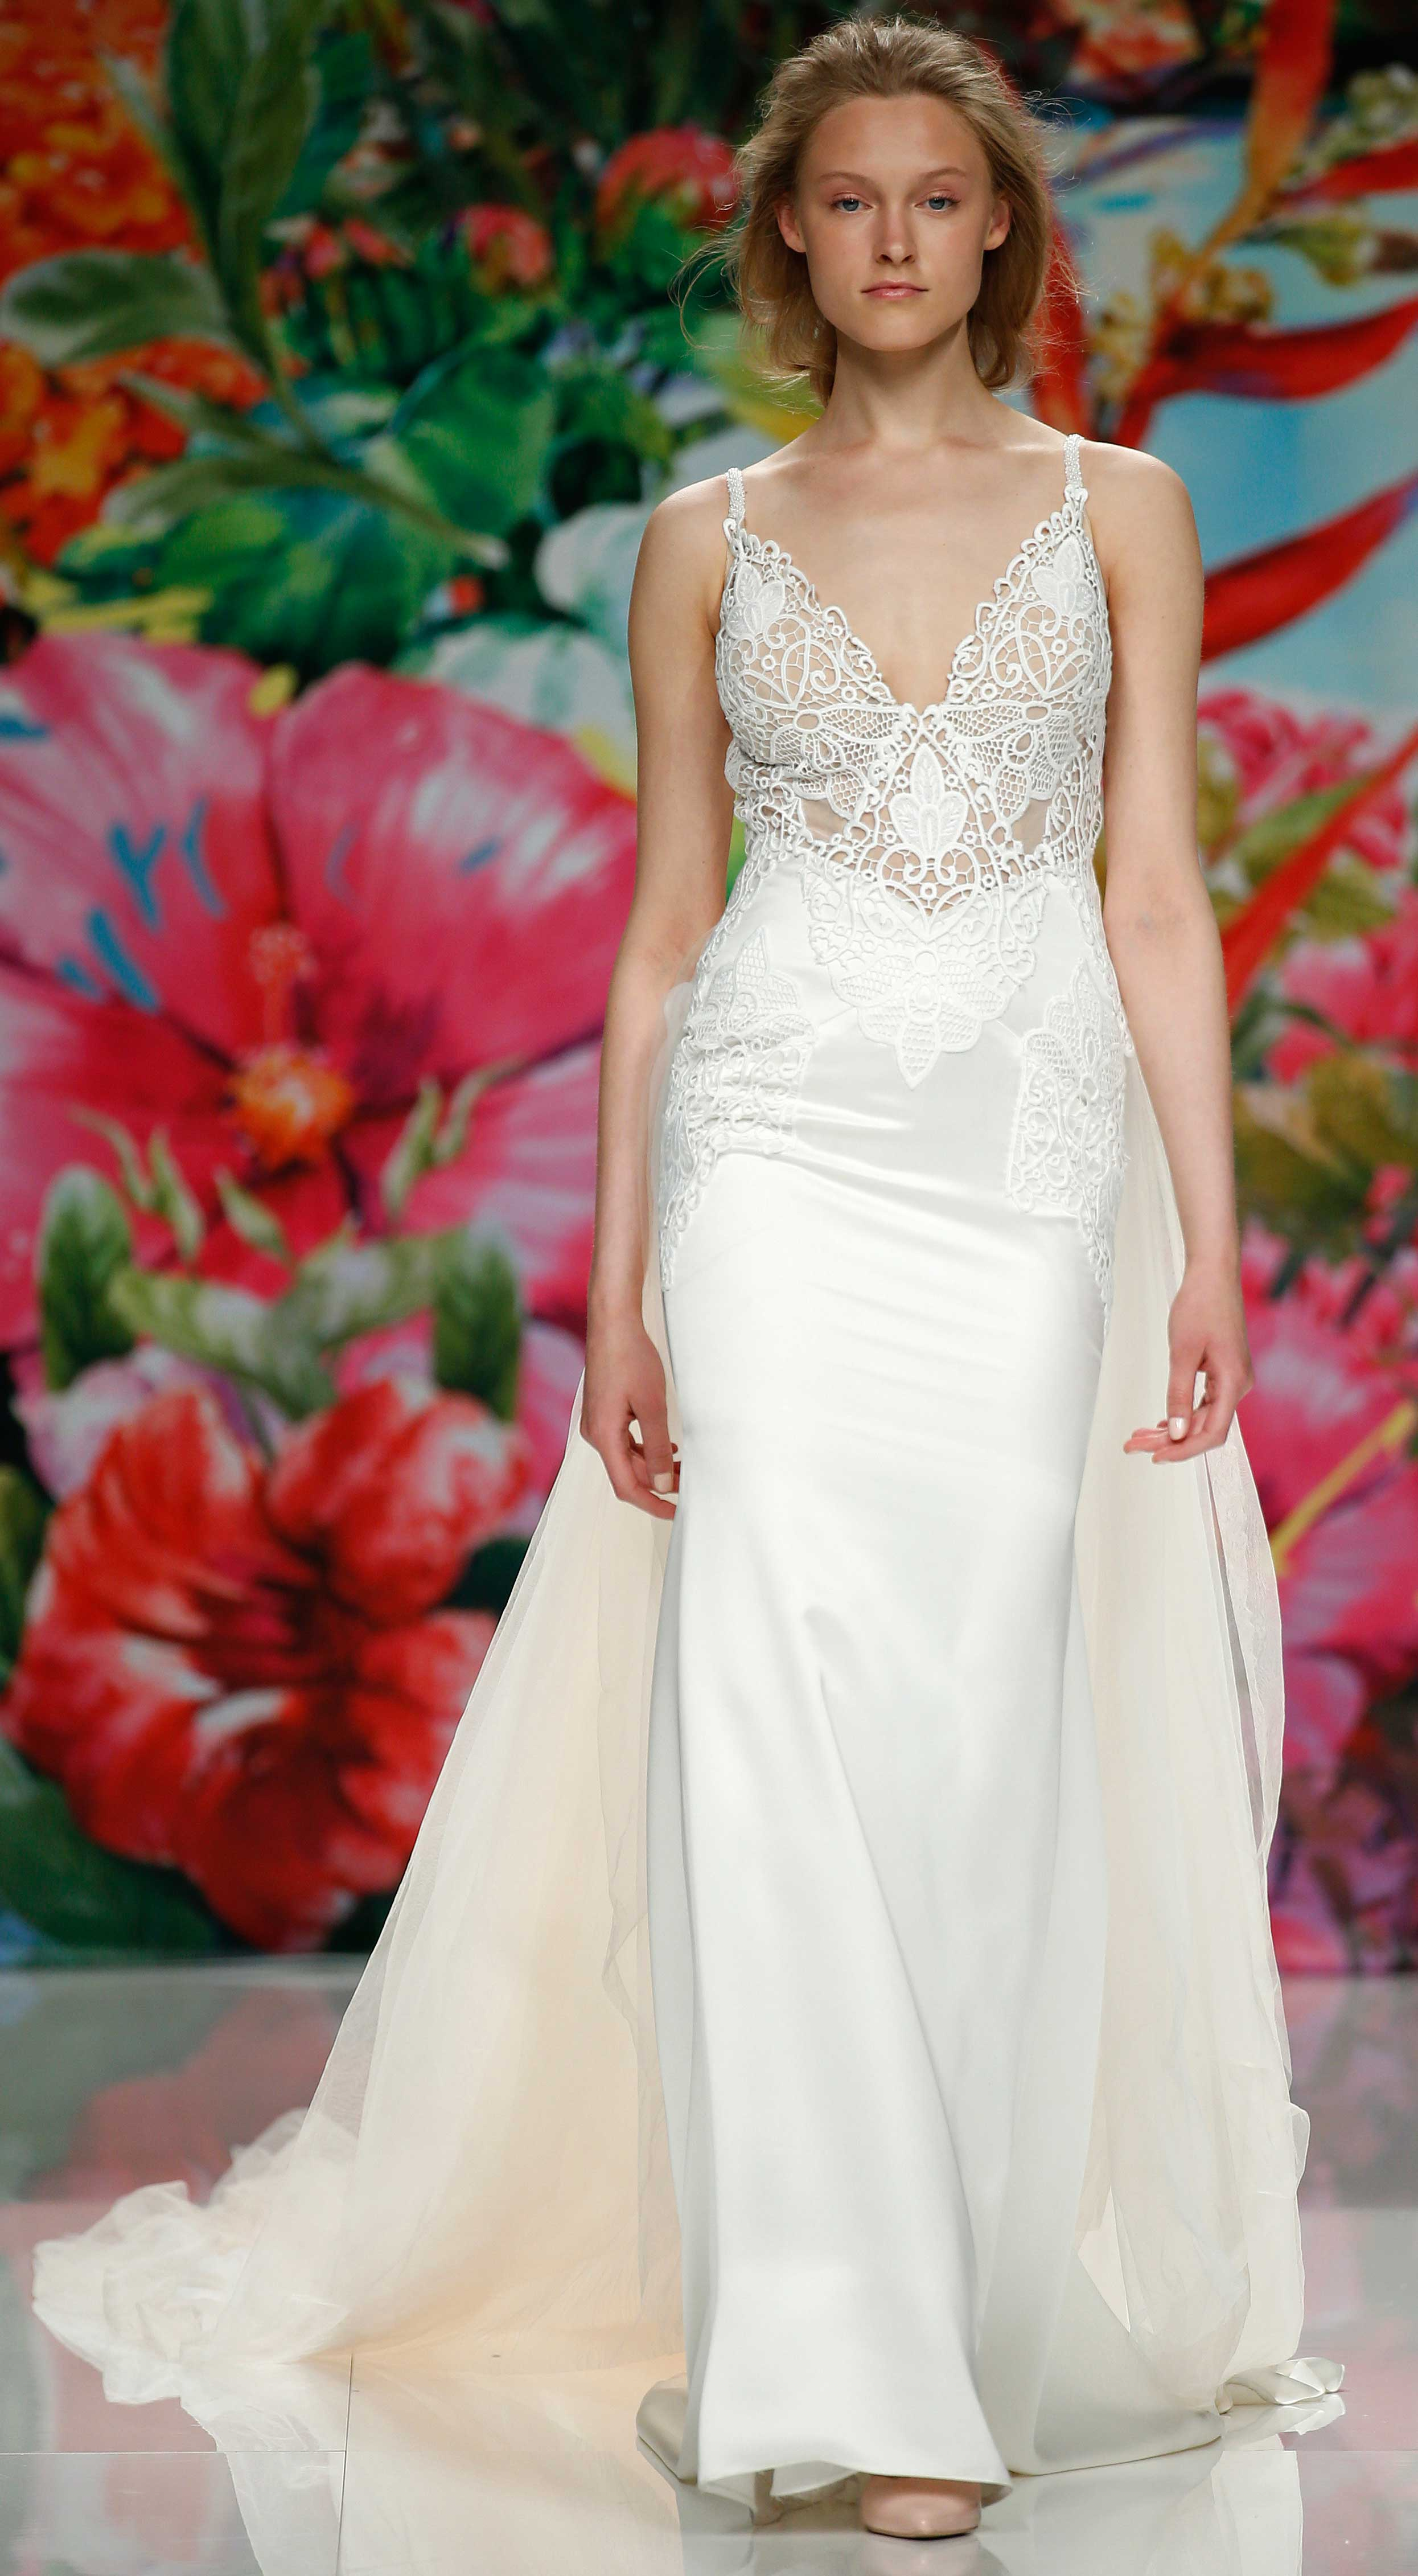 Wedding Gowns Inspired by Eniko Parrish\'s Dress - Inside Weddings